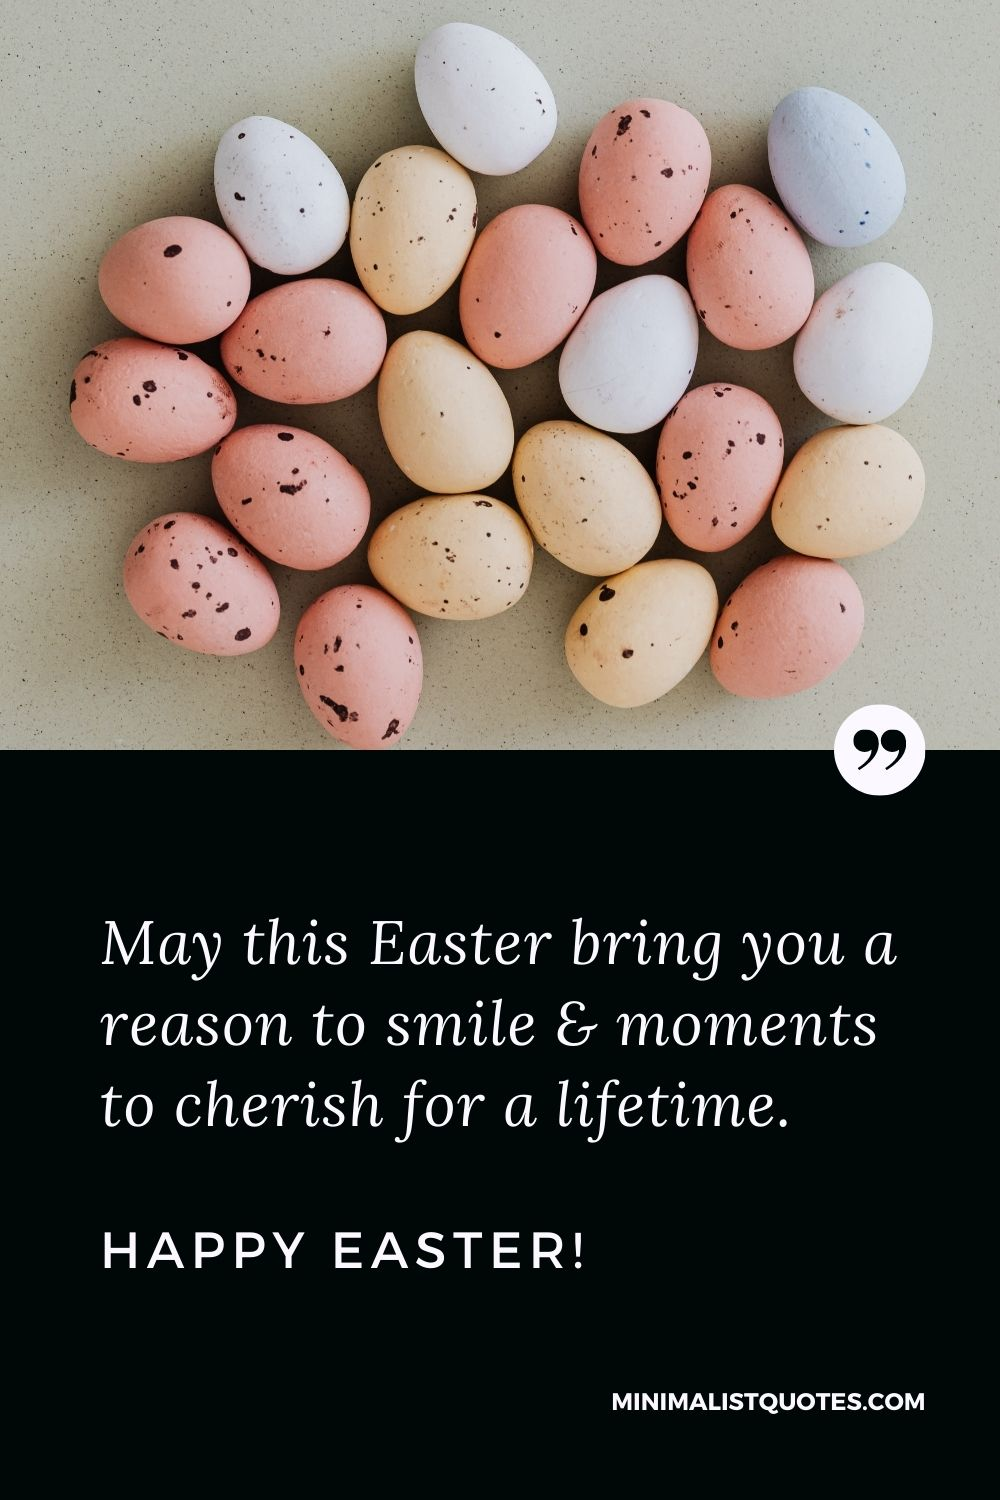 Easter Quote, Wish & Message With Image: May this Easter bring you a reason to smile & moments to cherish for a lifetime. Happy Easter!